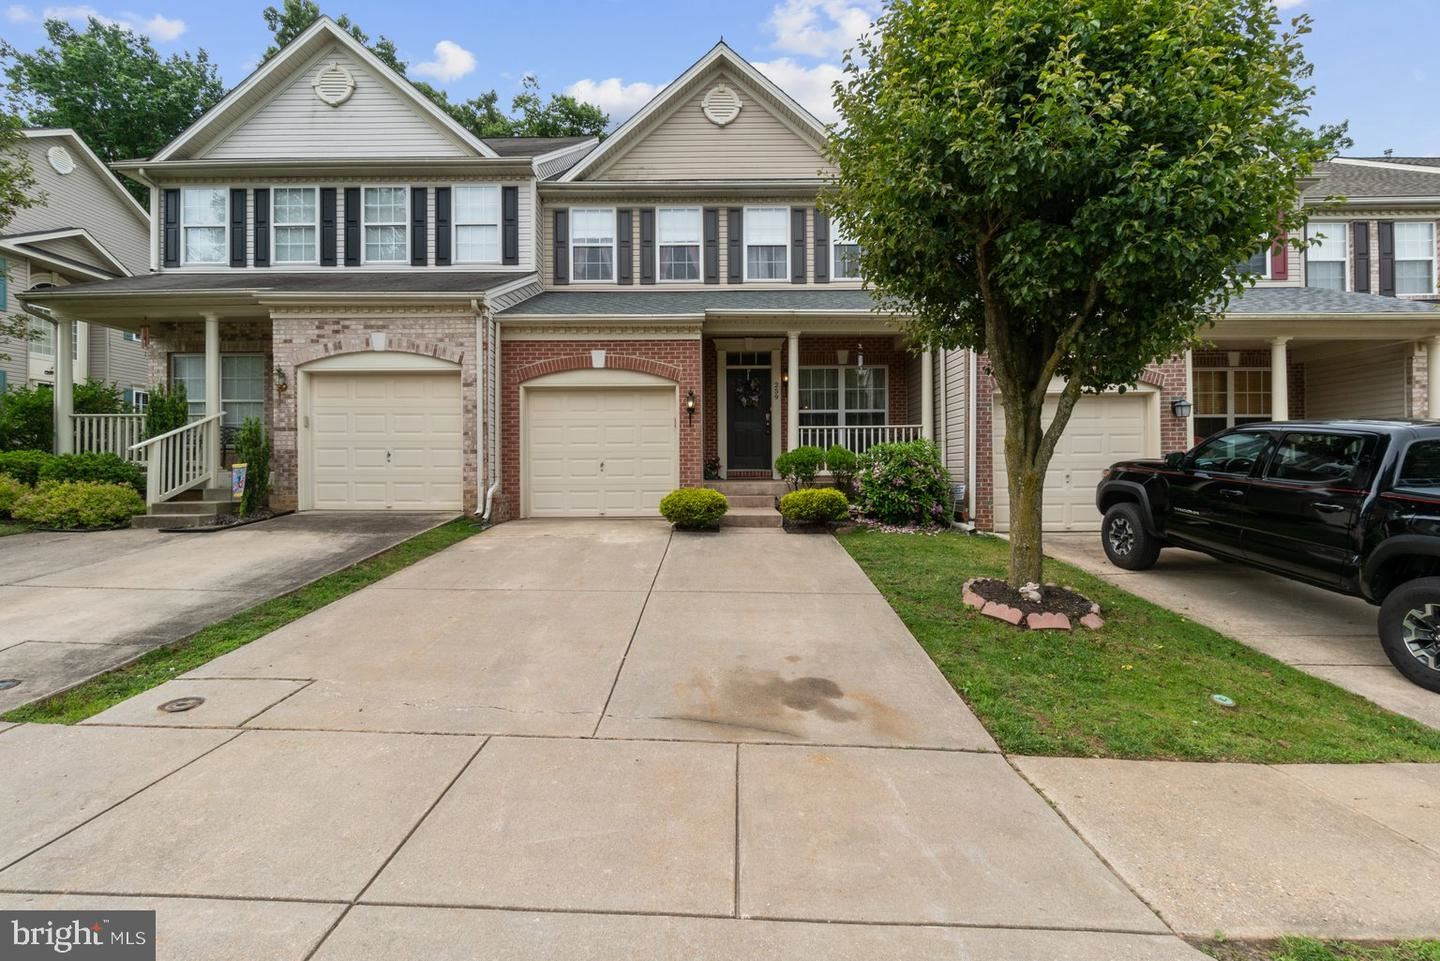 259 TRUDY CT, Forest Hill, MD 21050 - MLS#: MDHR260972